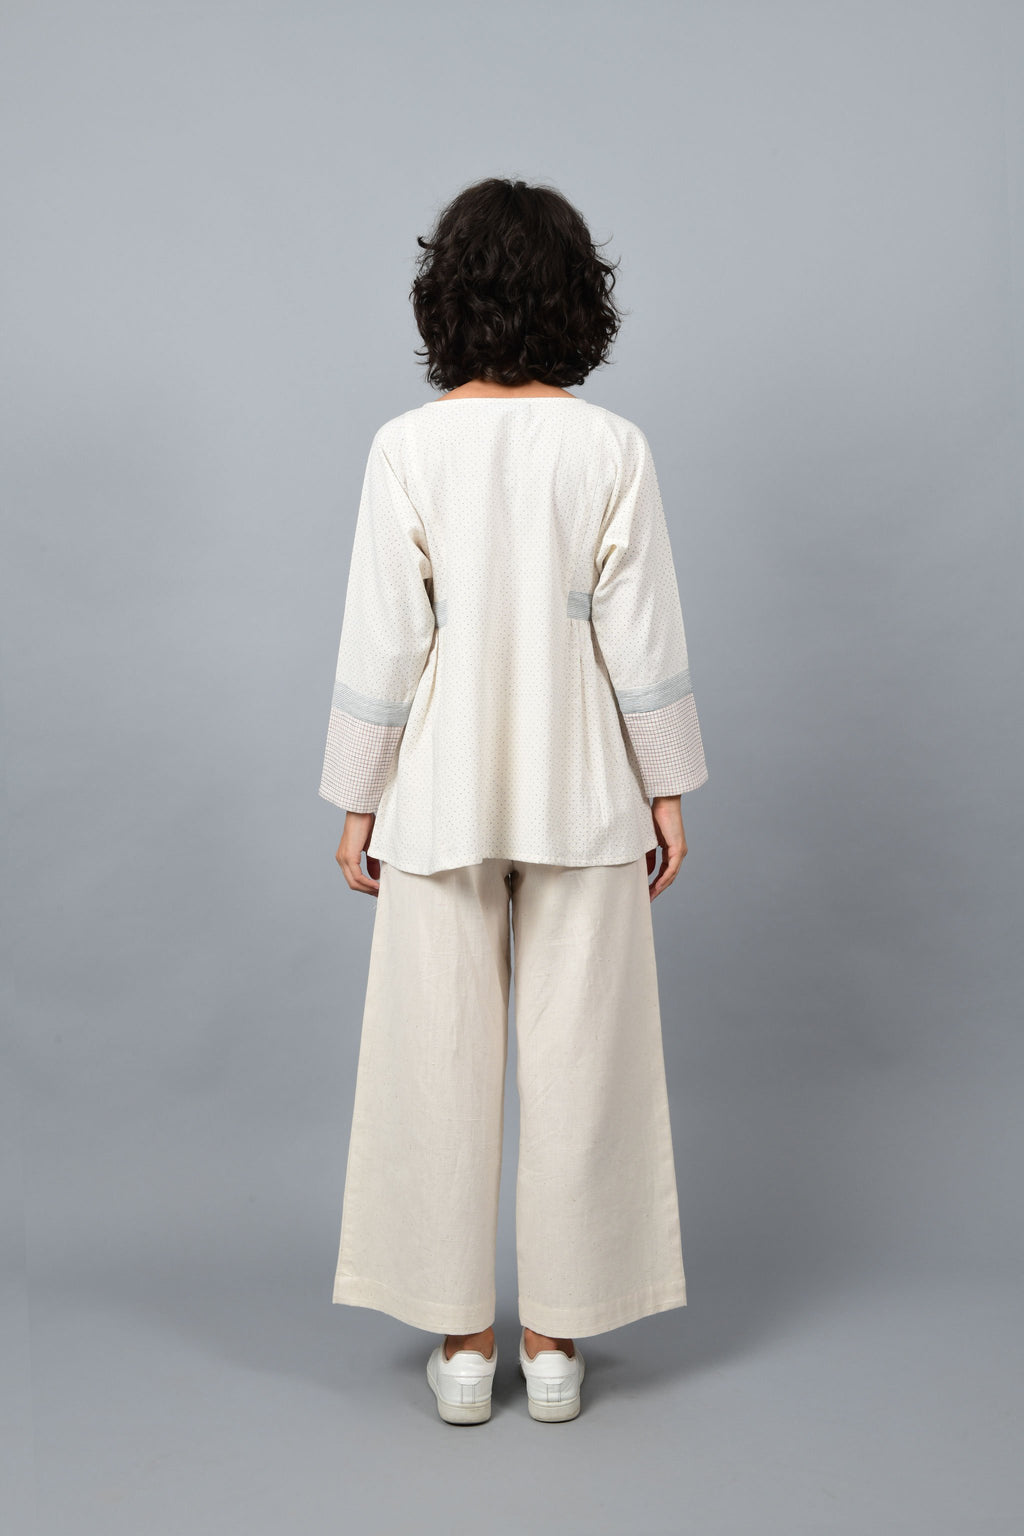 Back of the Model wearing Dolman sleeve side gather khadi handspun handwoven cotton top in natural off-white color with blue dots and blue stripes on the sleeves teamed with off-white palazzos and white sneakers